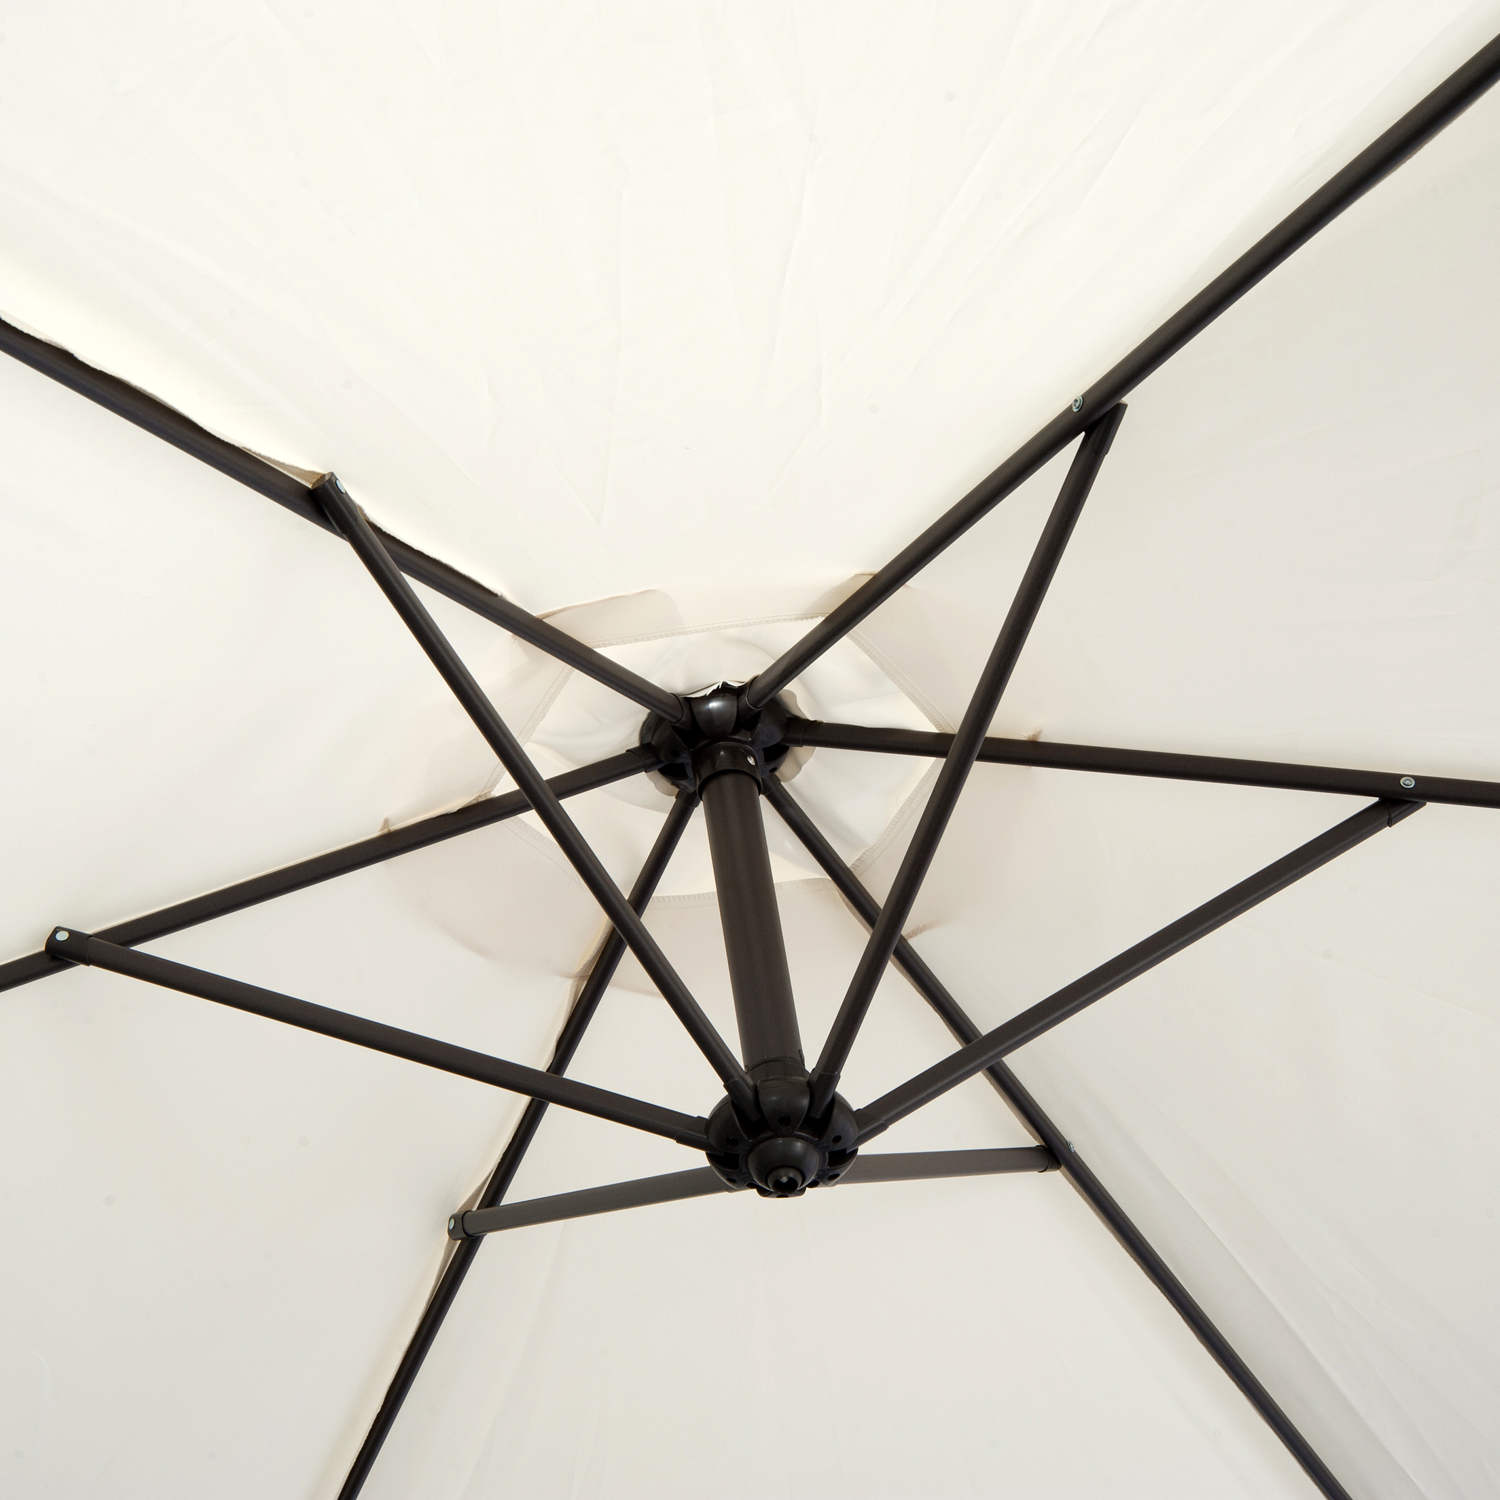 umbrella nz auckland gazebos outdoor patio pop up grey cantilever cropped umbrellas wall charcoal mounted acf